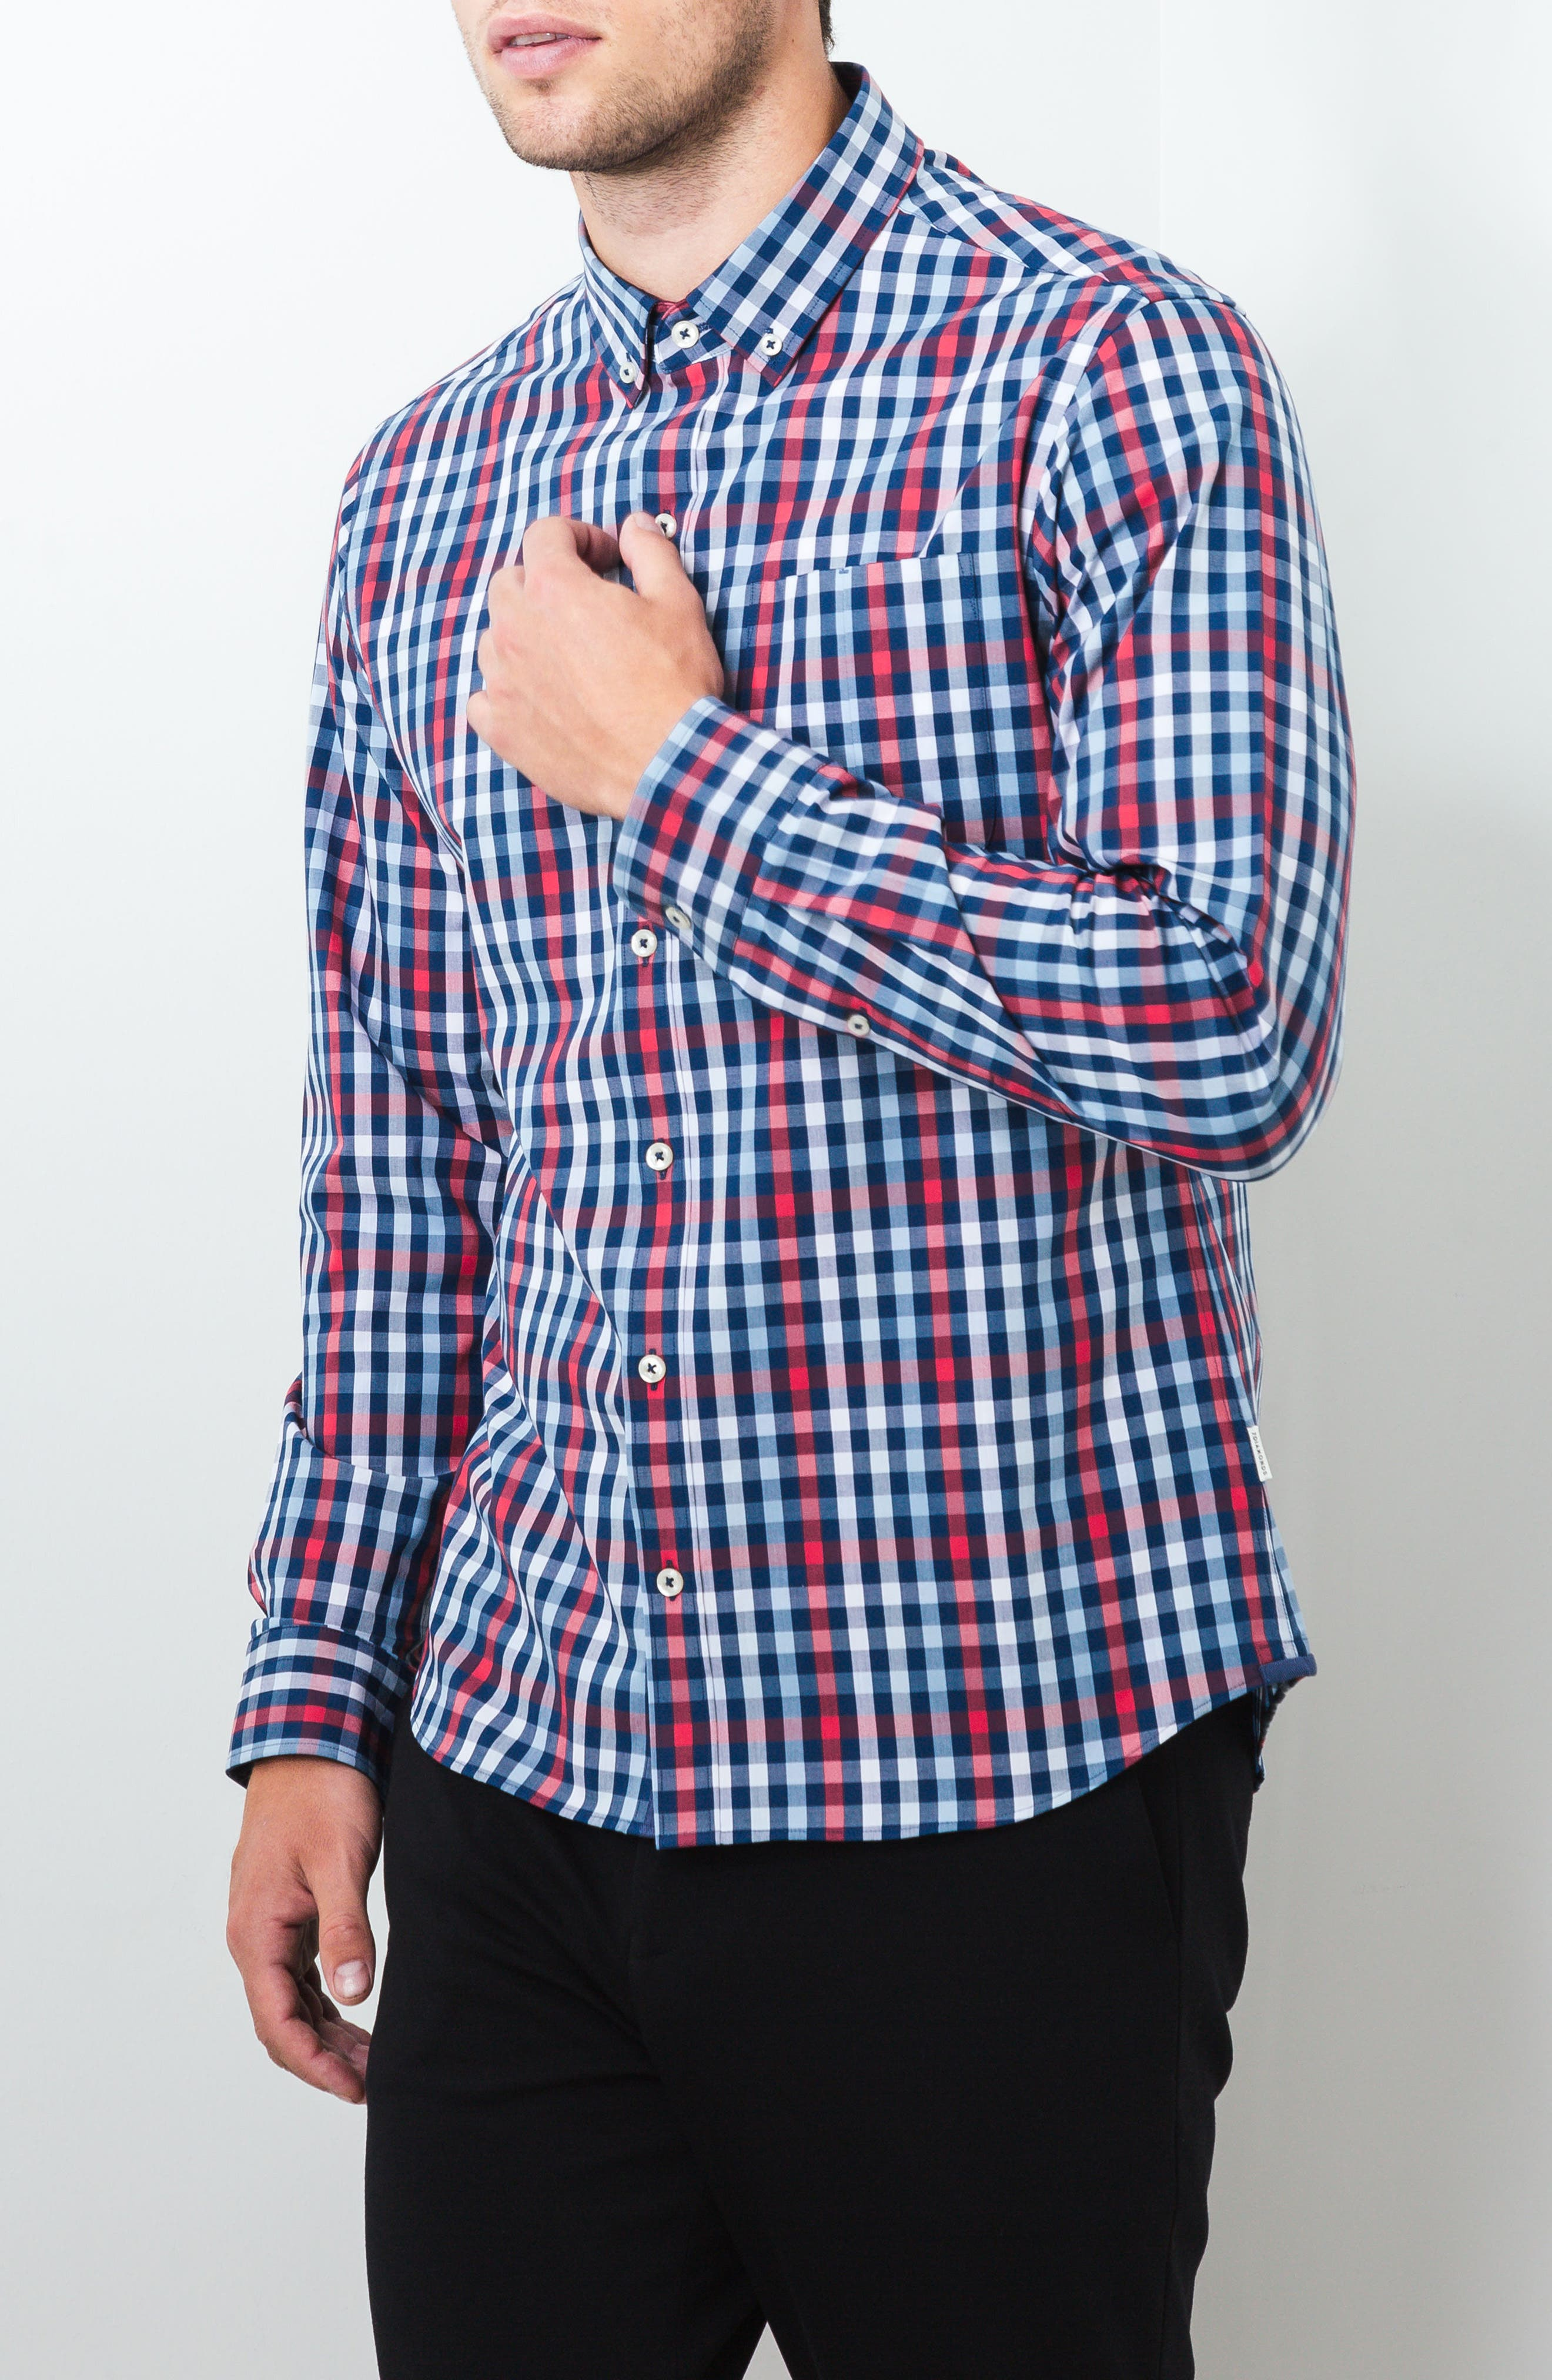 Year One Woven Shirt,                             Alternate thumbnail 4, color,                             Navy